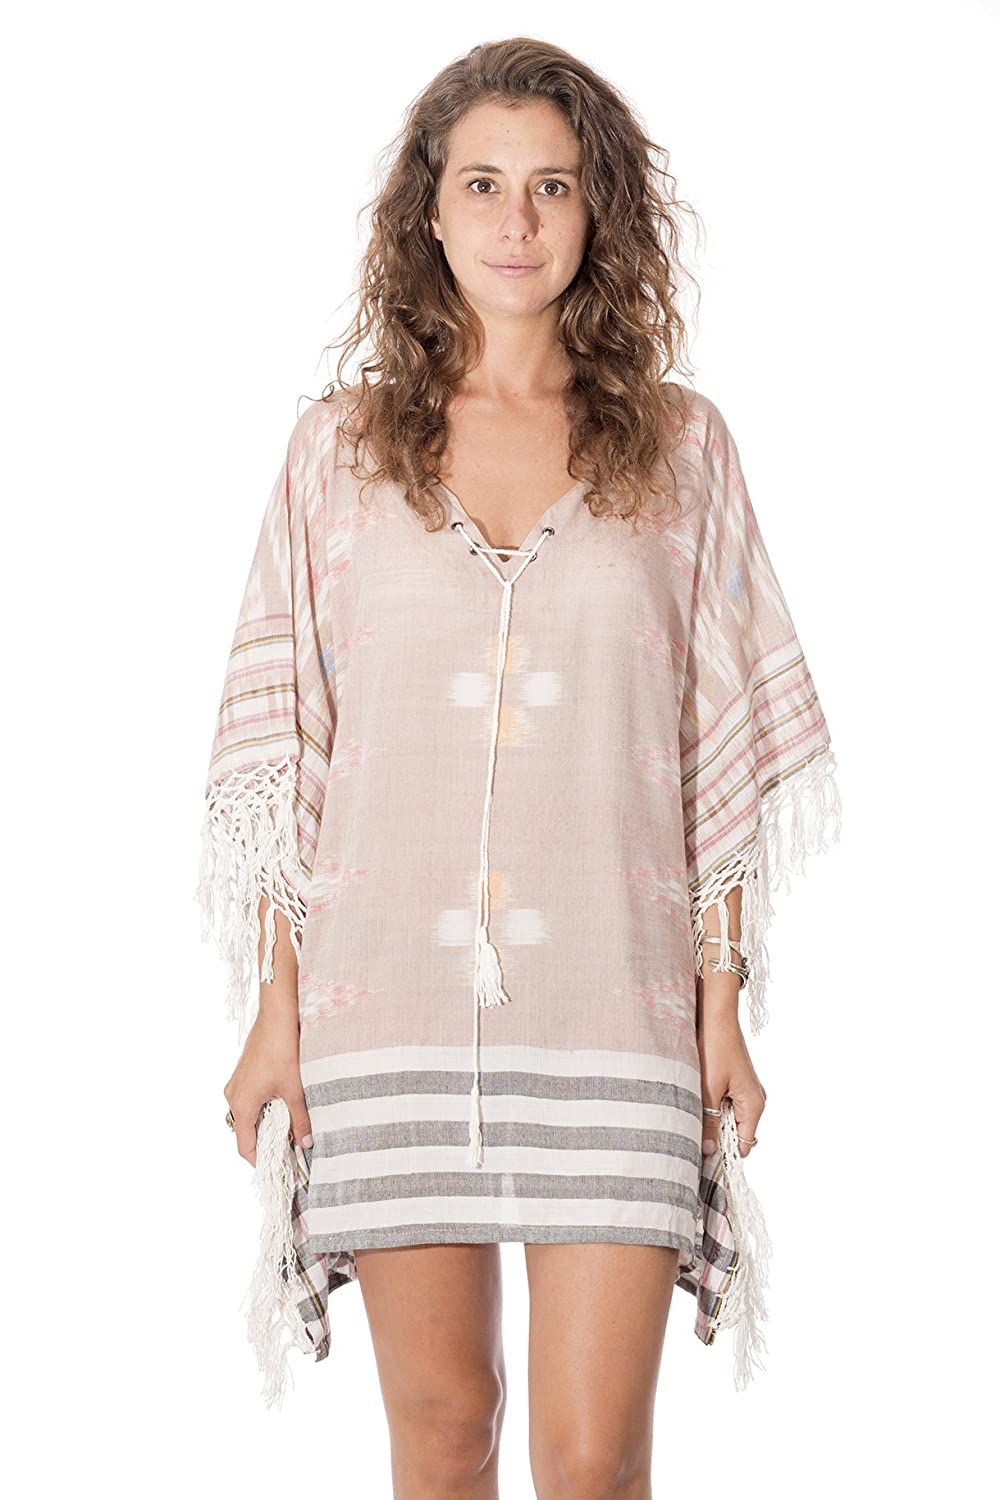 69ff8f029dcd8 Hand made, top quality women\'s fashion caftan. The ikat fabric makes it a  very versatile, bohemian inspired caftan / cover up